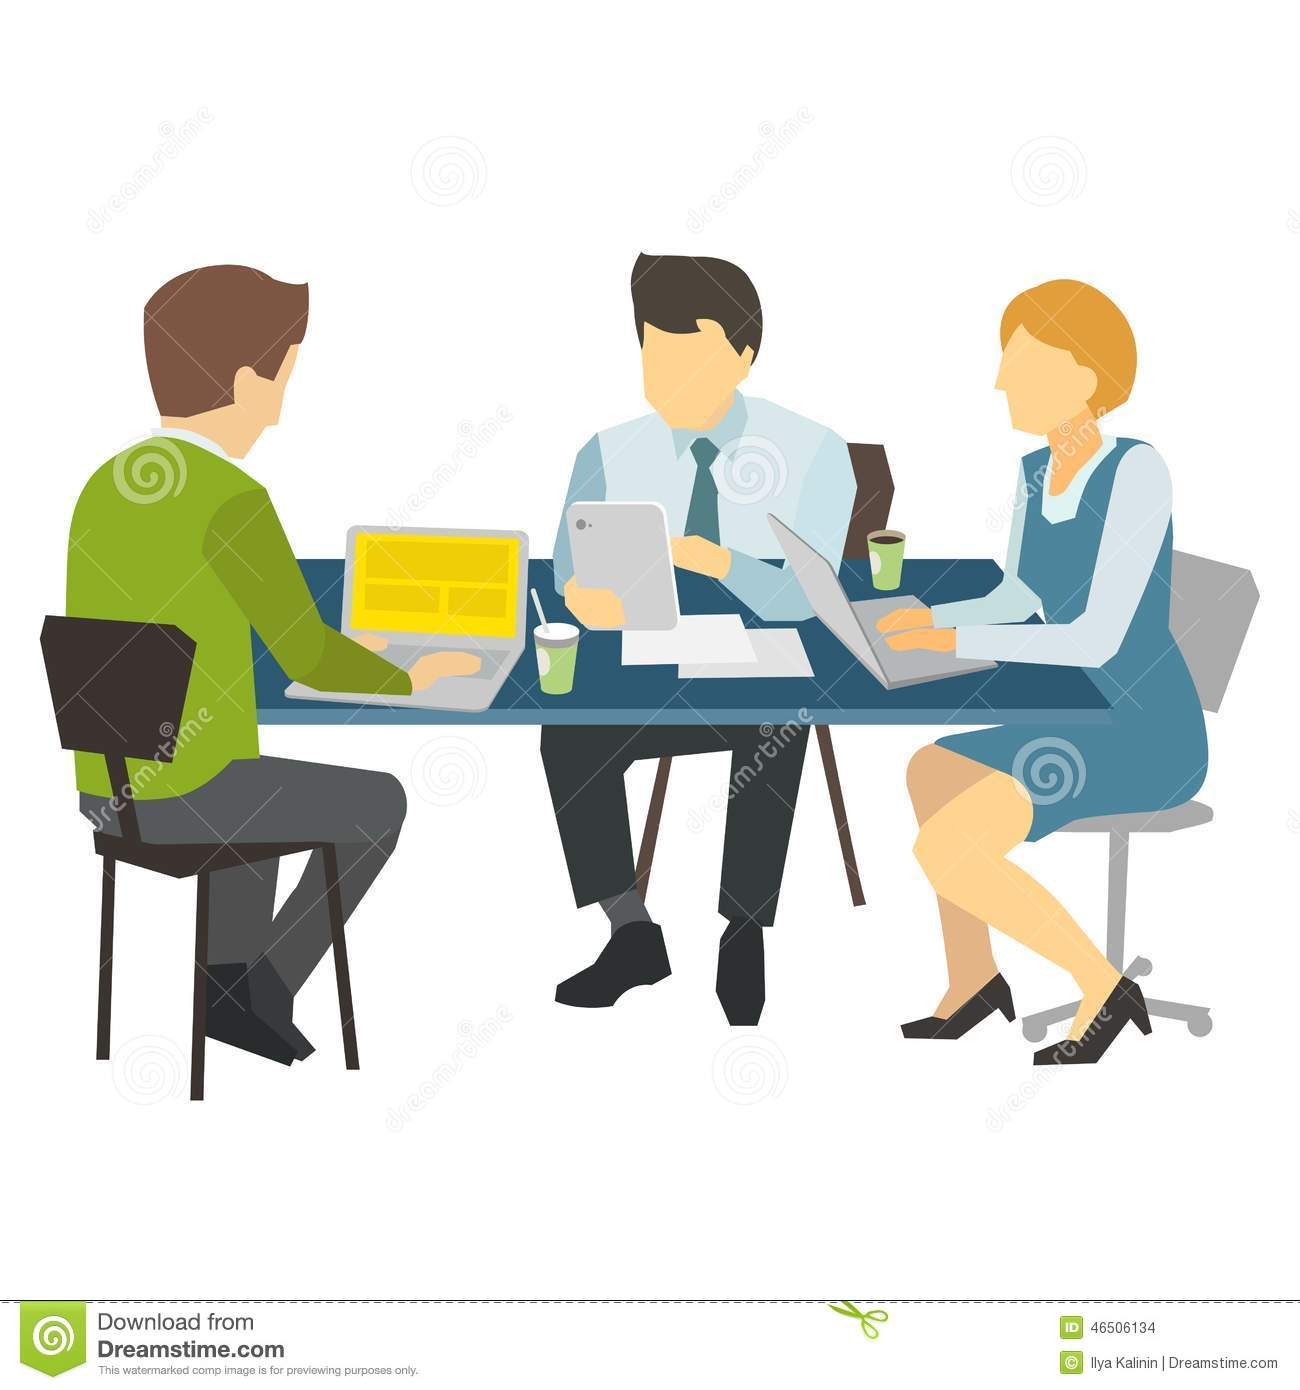 People Work At The Table Stock Vector Illustration Of